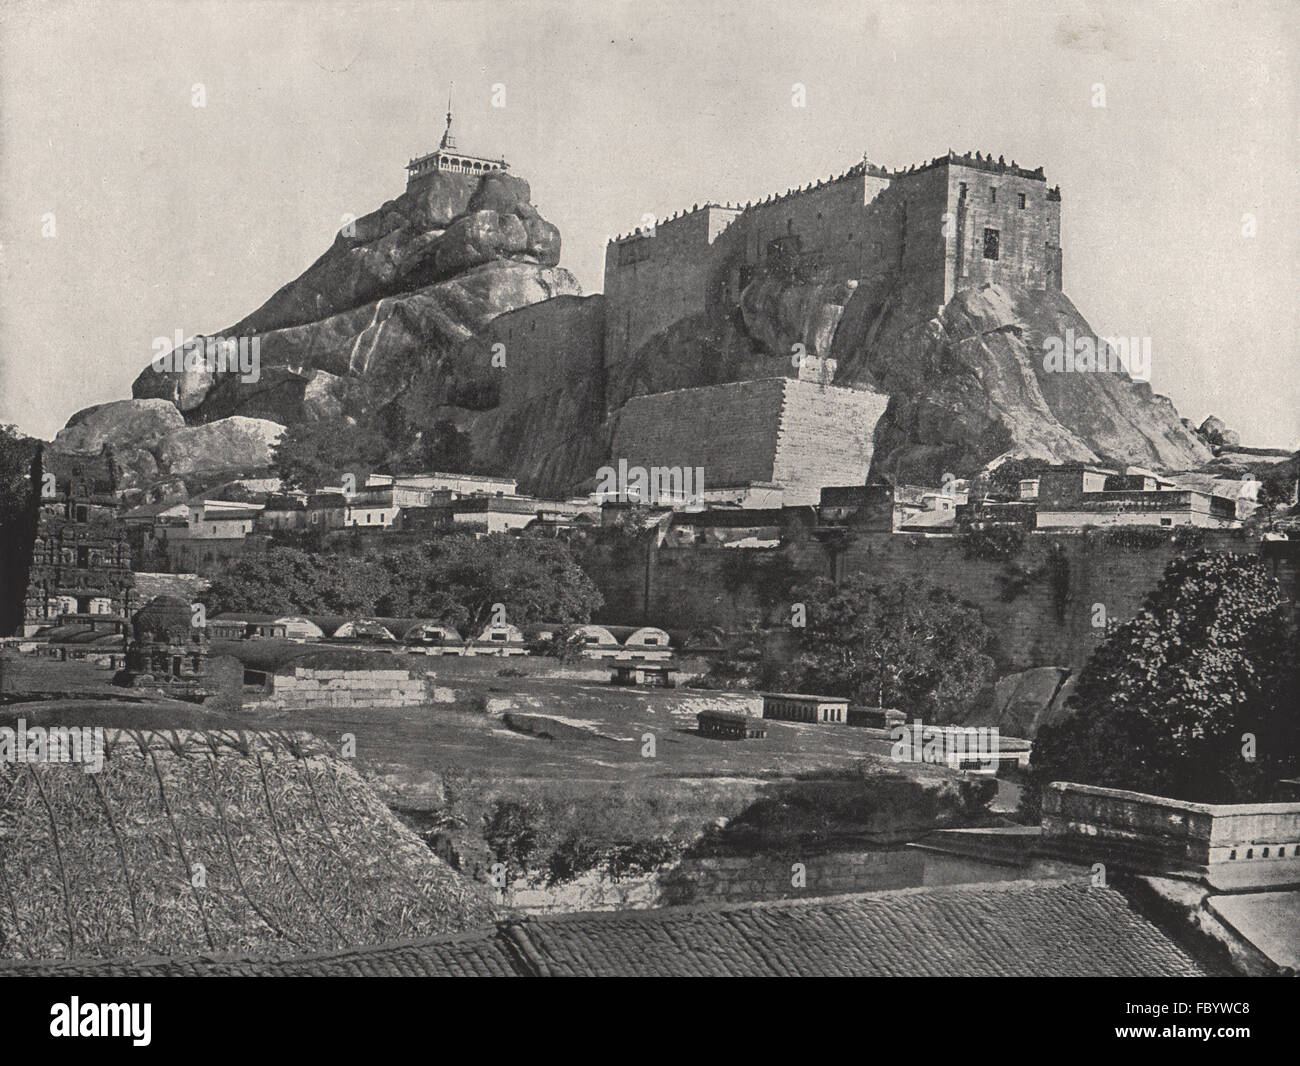 THIRUCHCHIRAPALLI. The rock, seen from the north. India, antique print 1895 - Stock Image